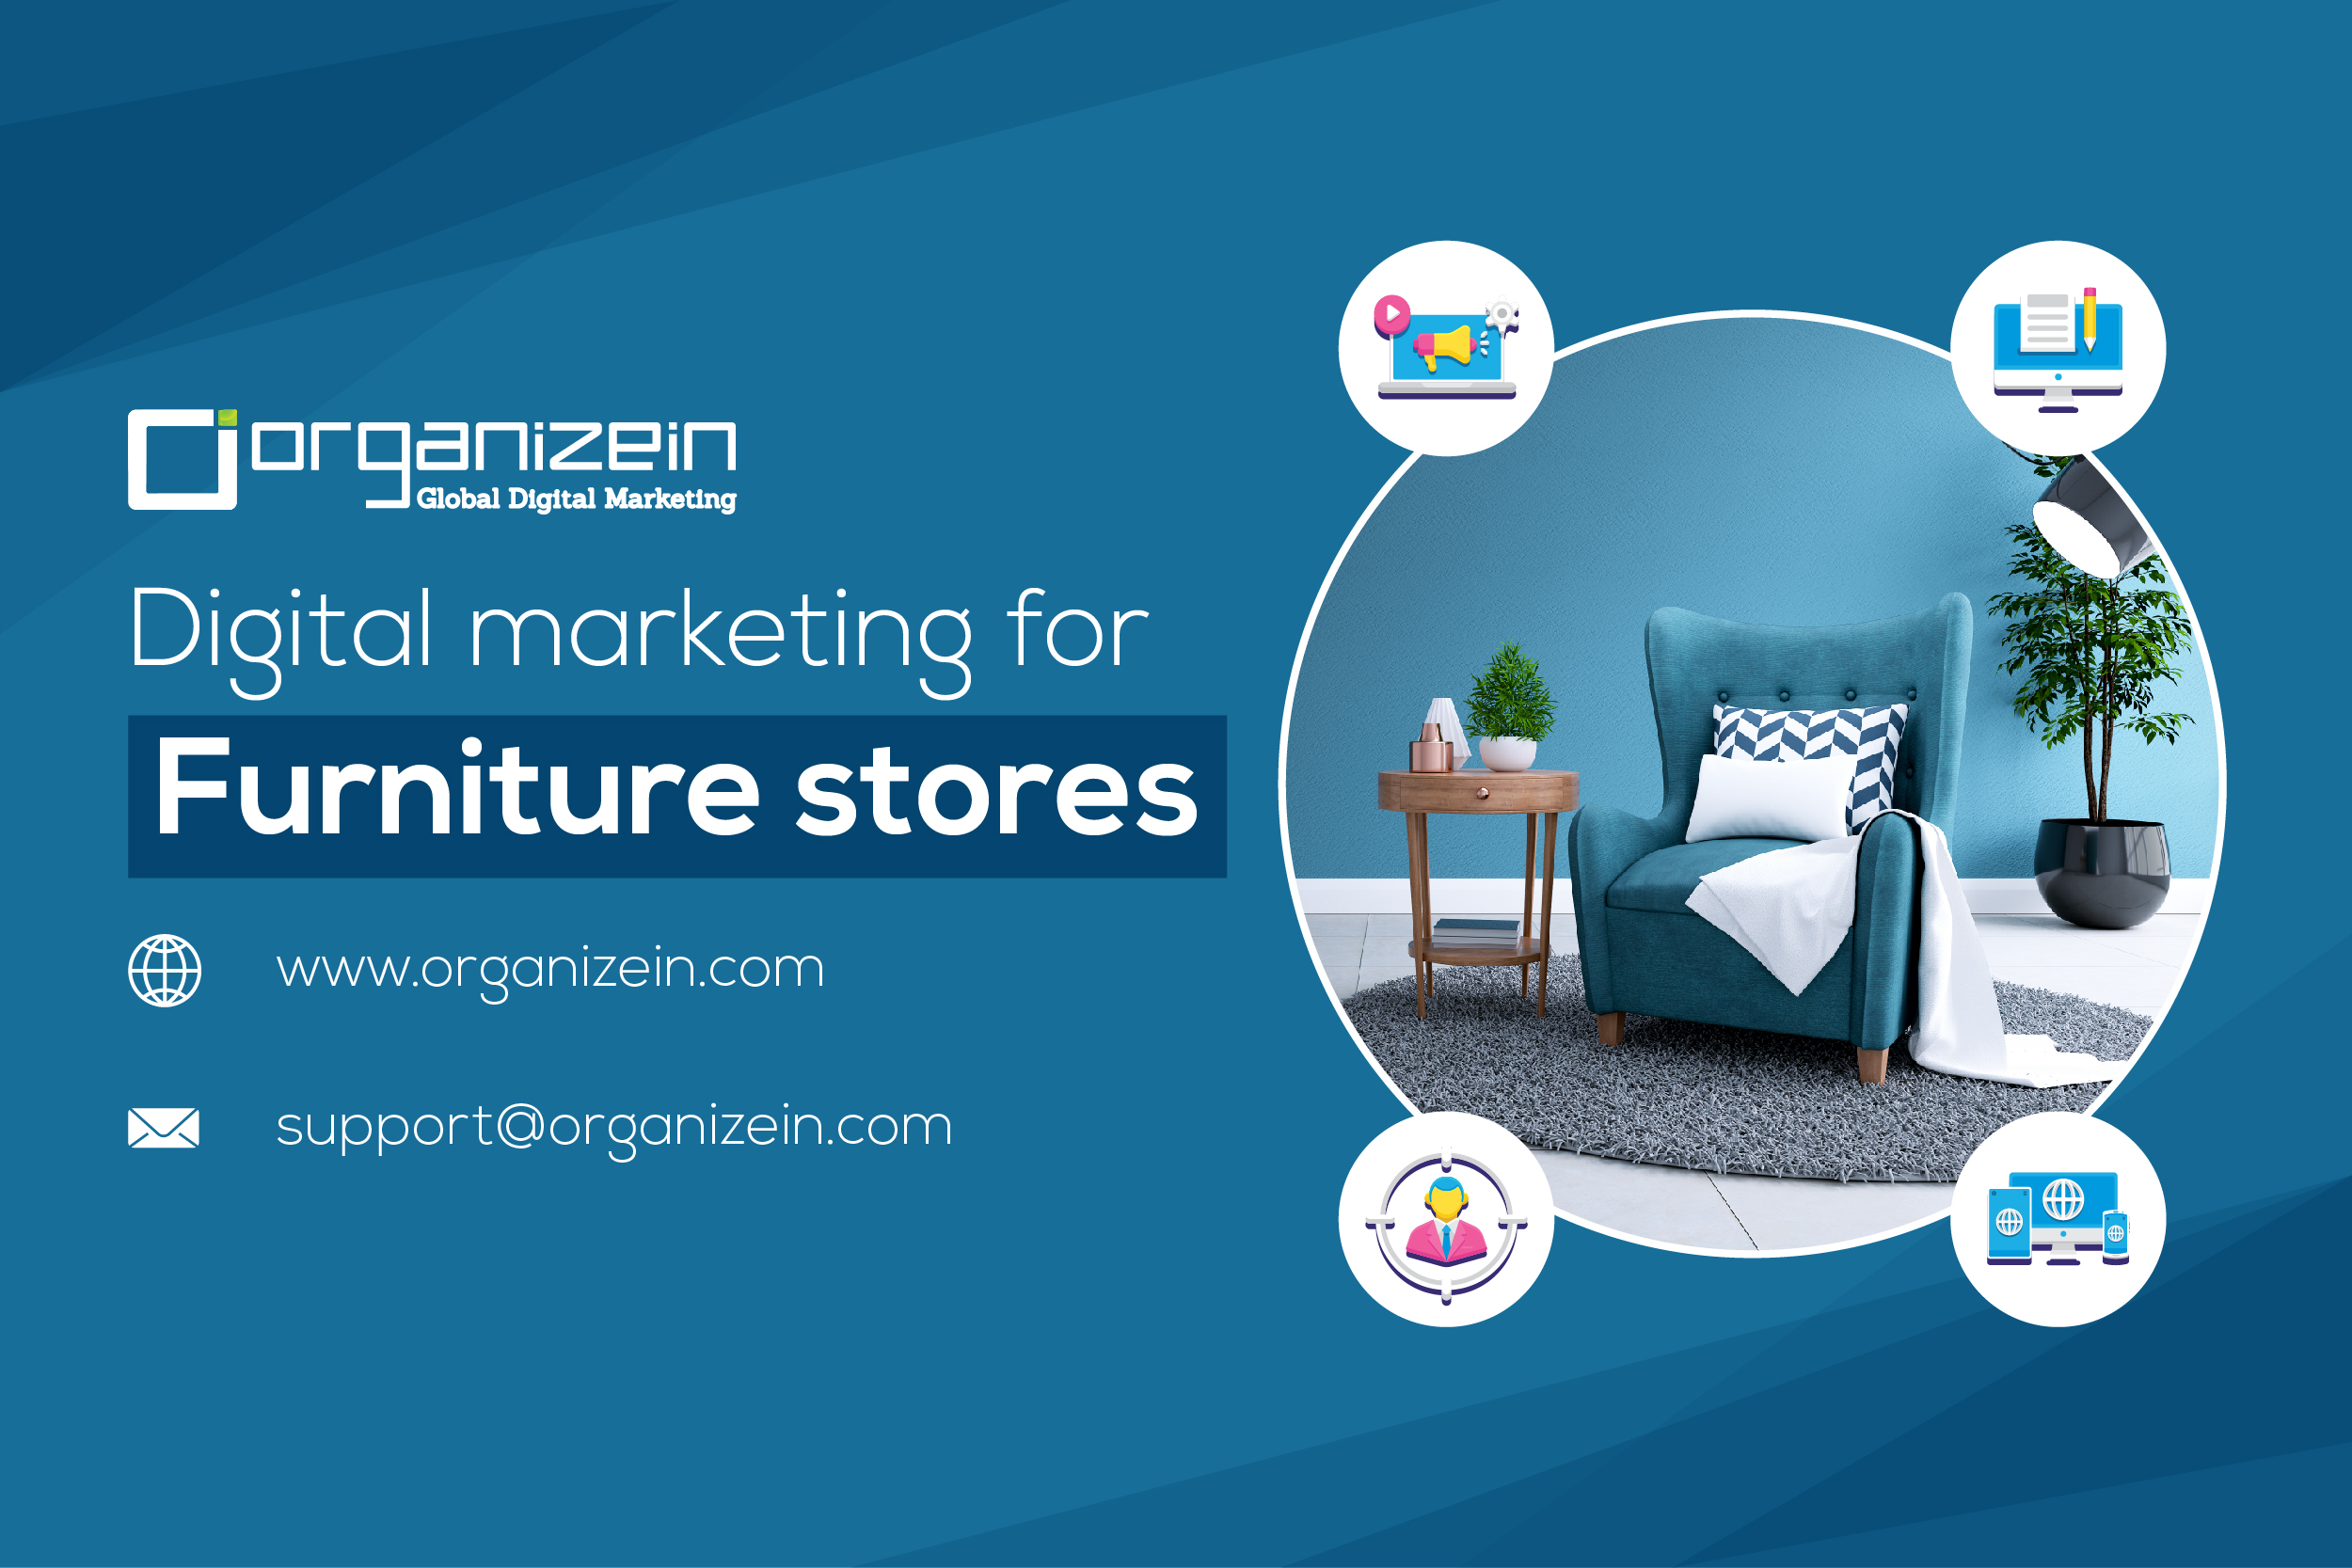 Digital marketing for furniture stores